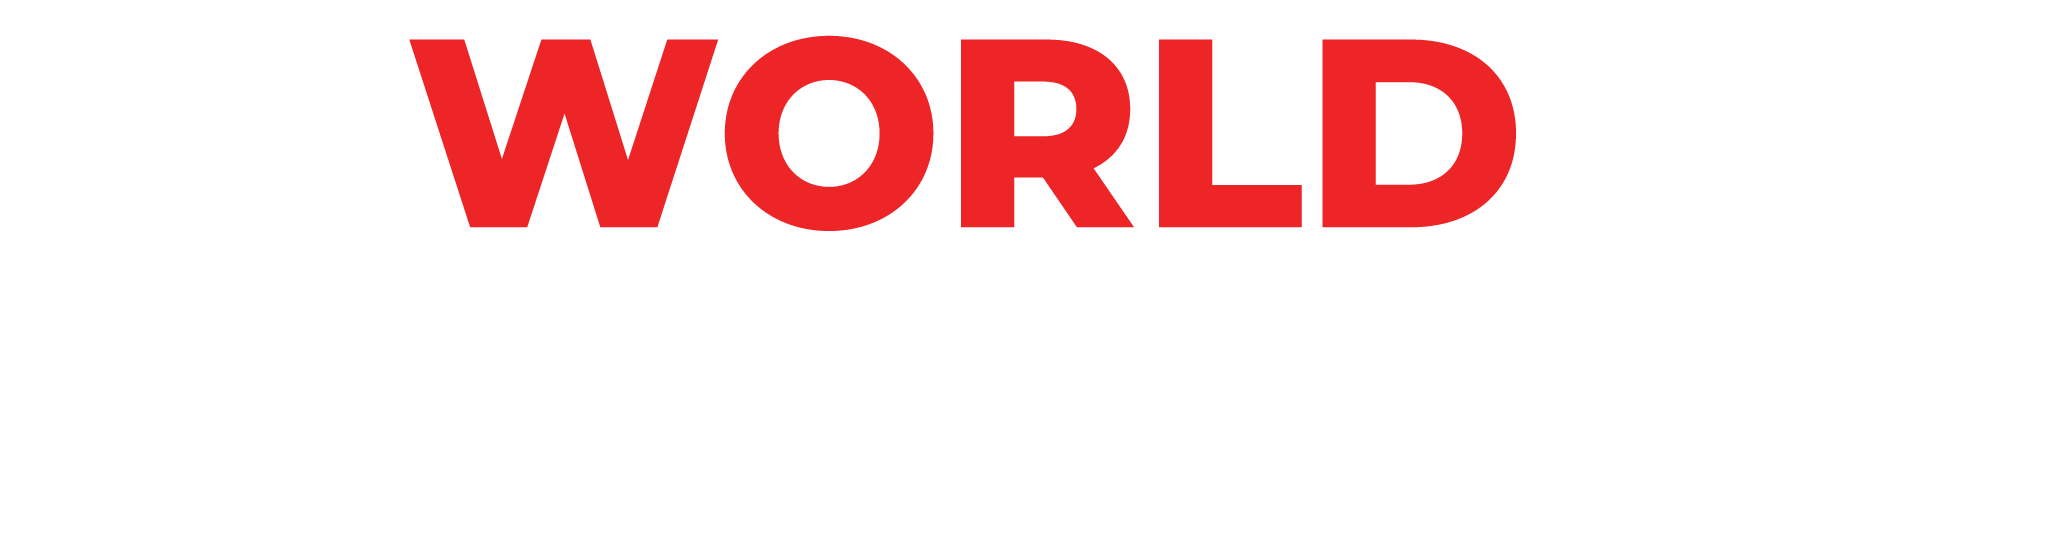 Zak World of Façades